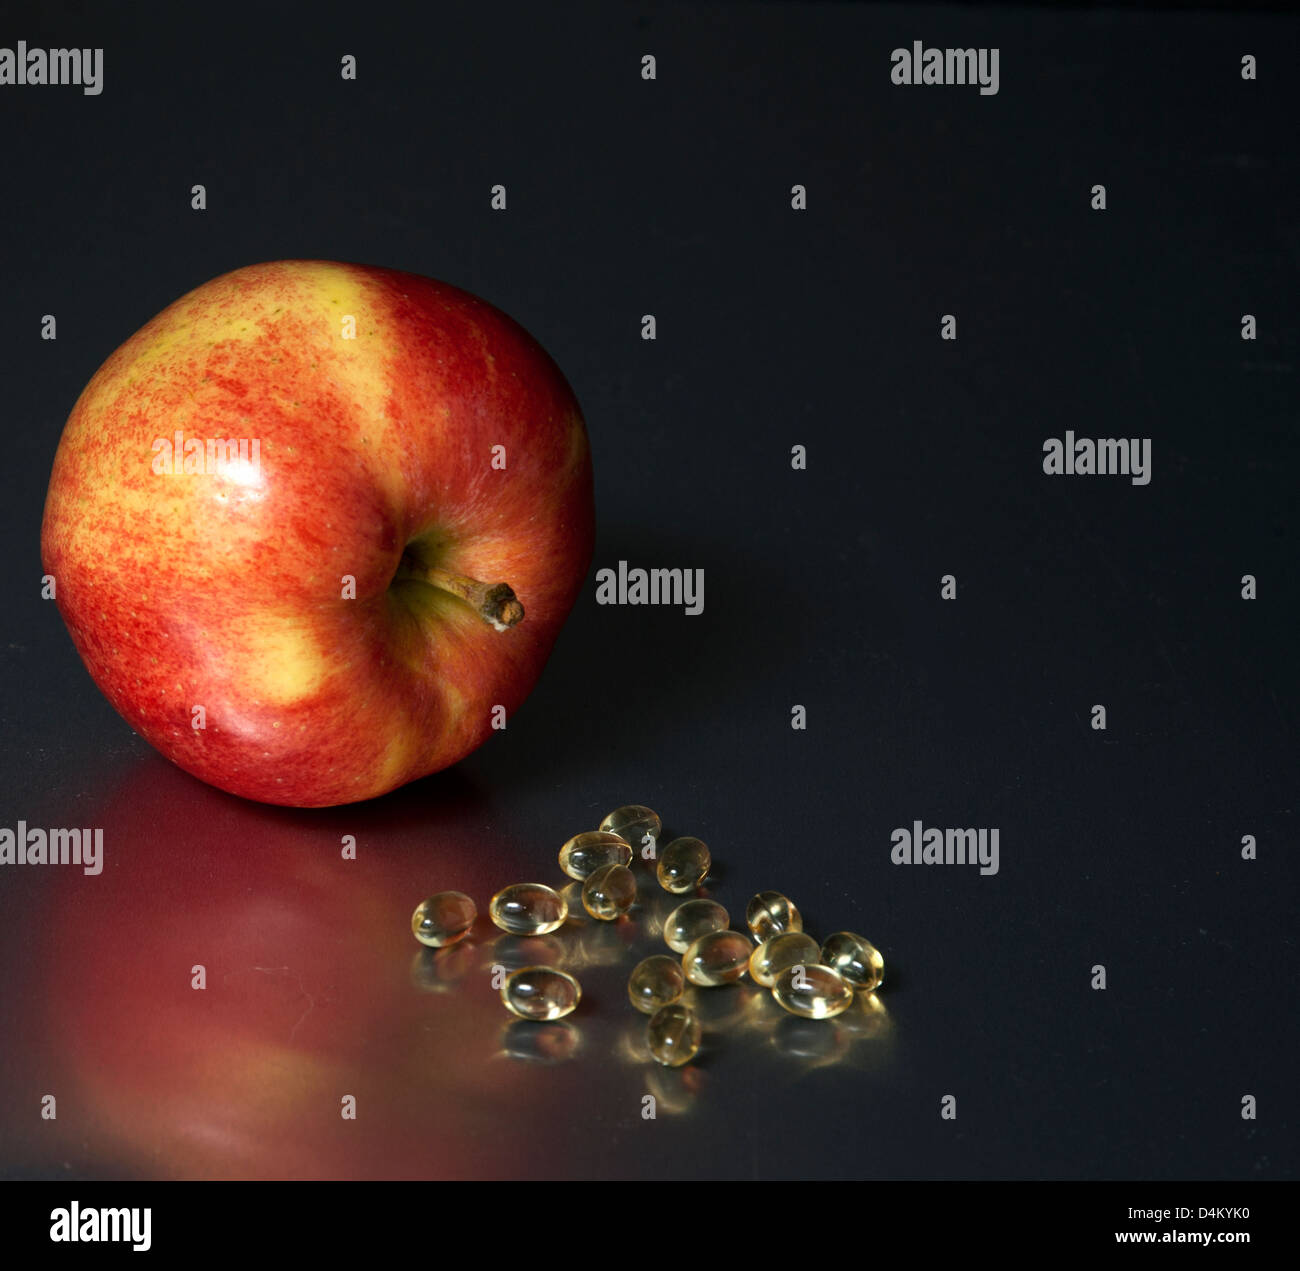 Red apple laying beside pile of vitamins - Stock Image